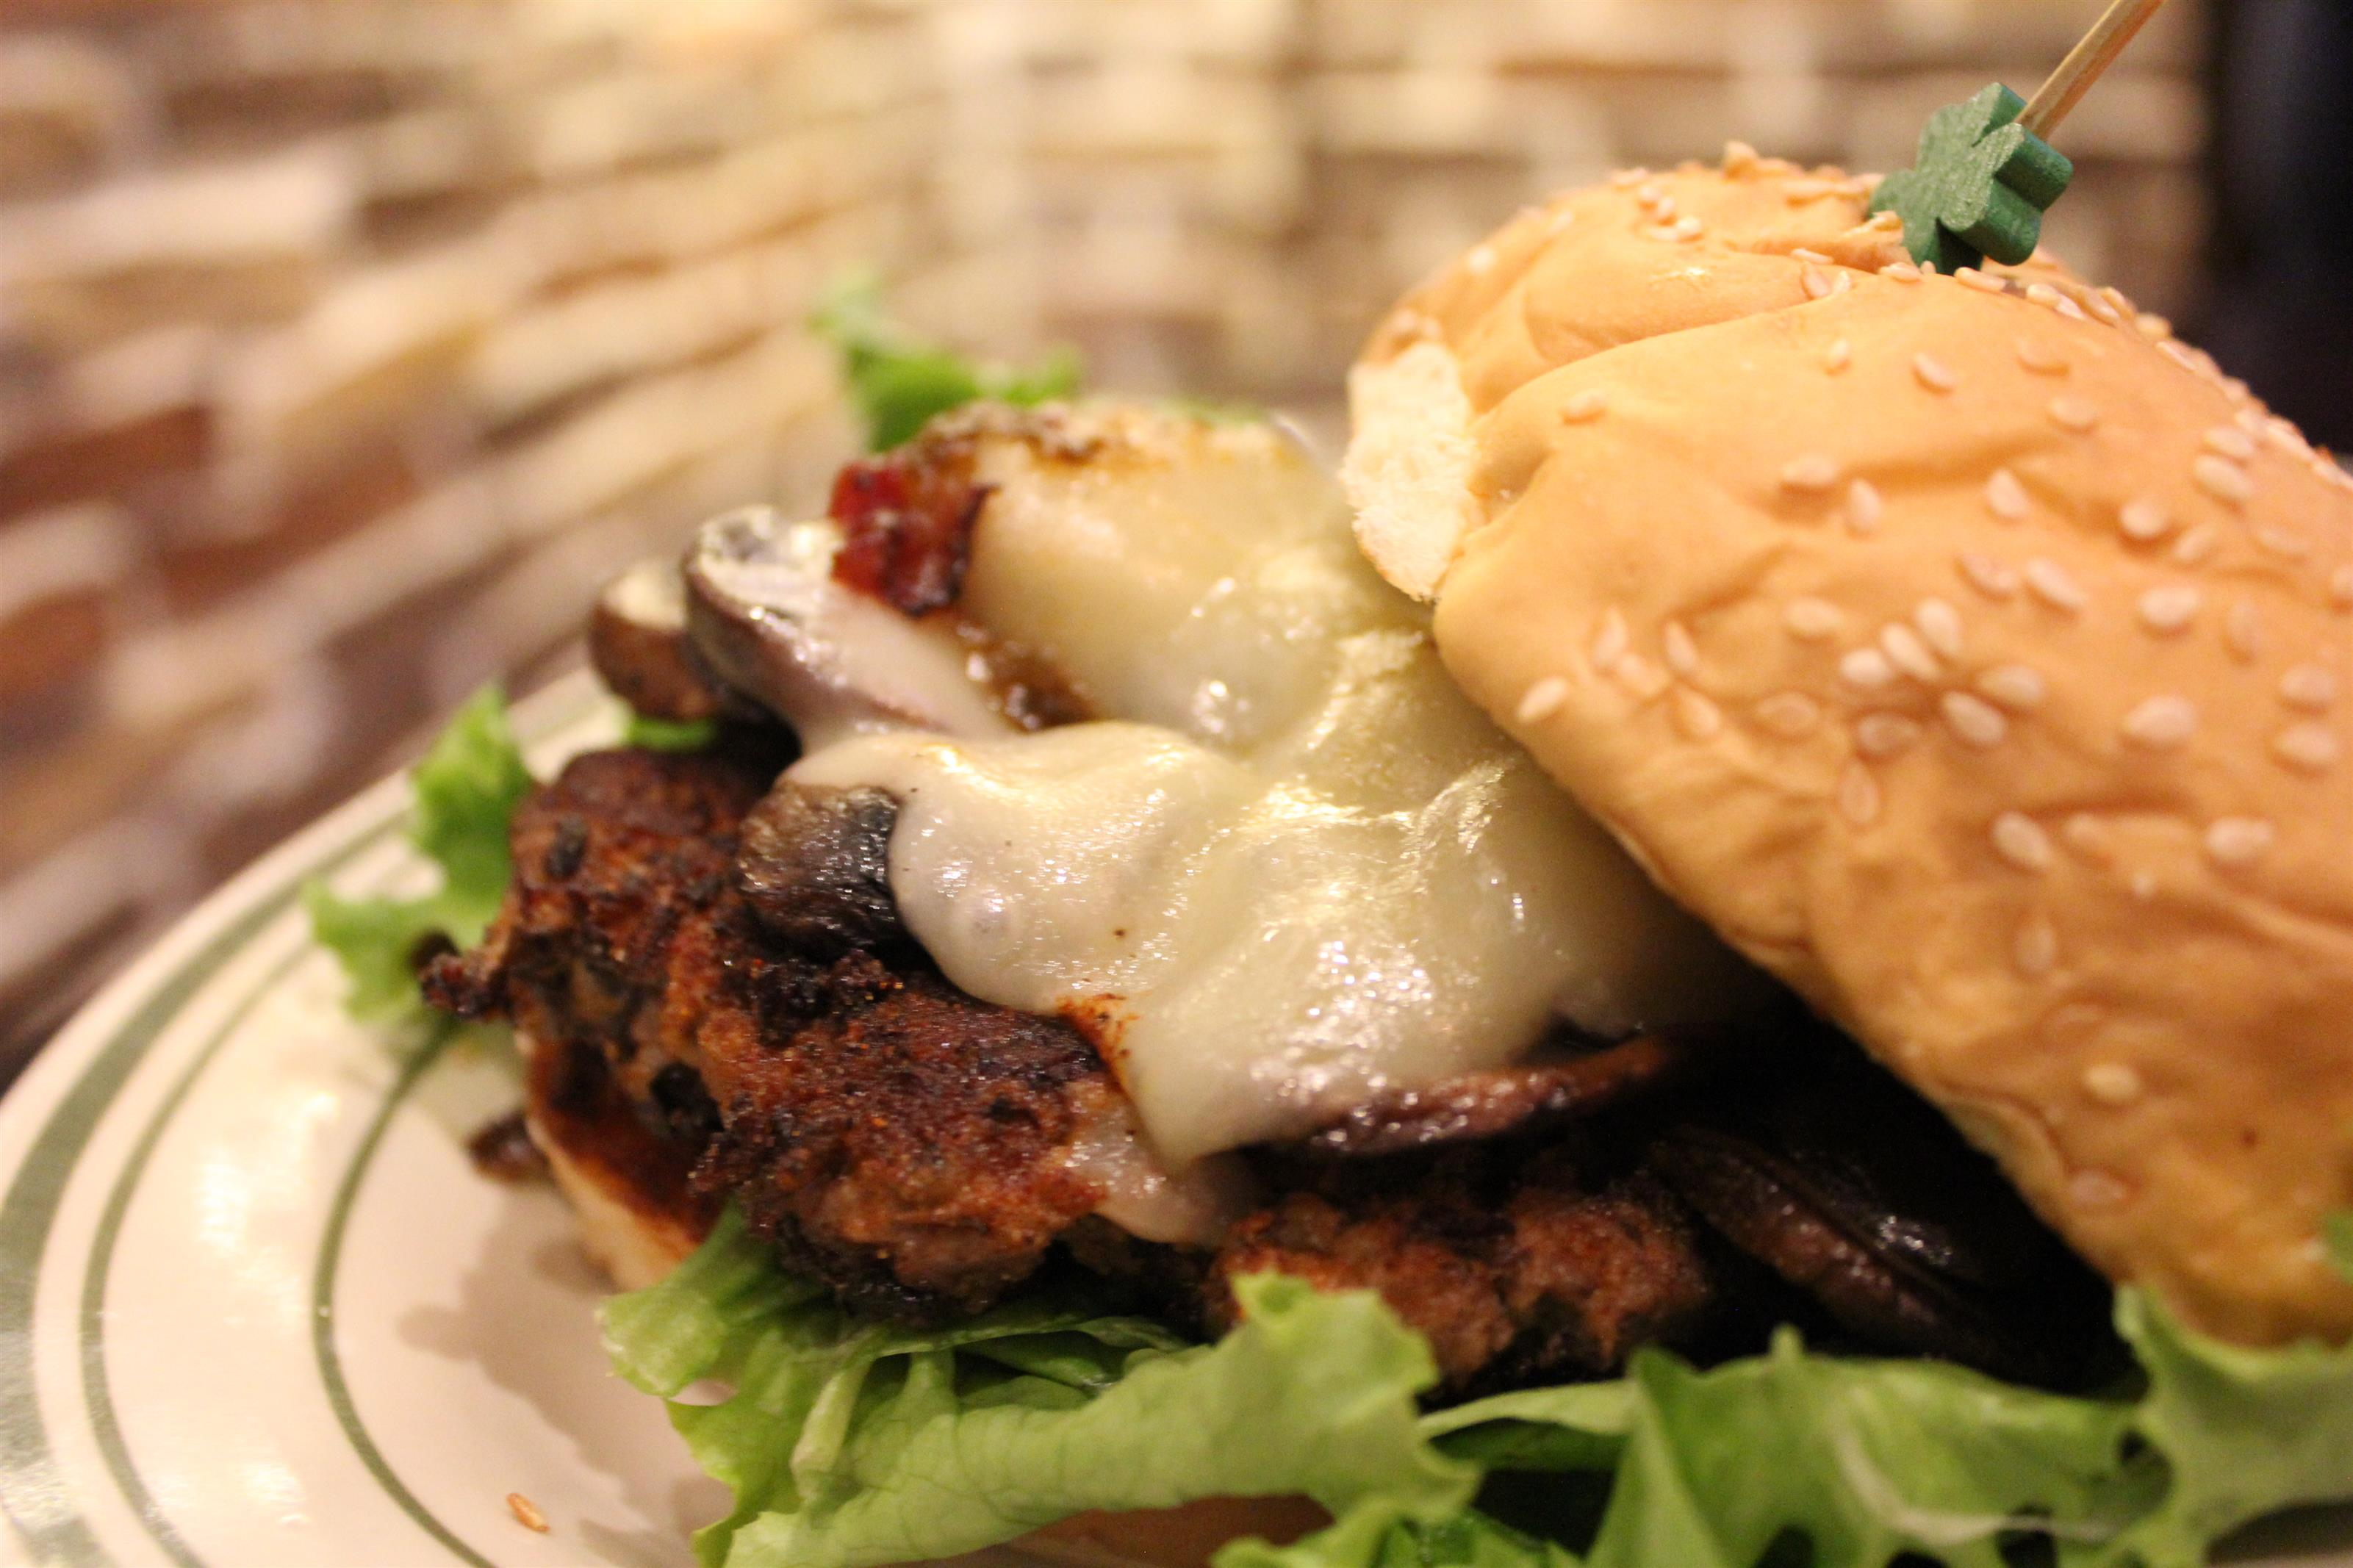 Hand crafted burger with sauteed mushrooms and swiss cheese.